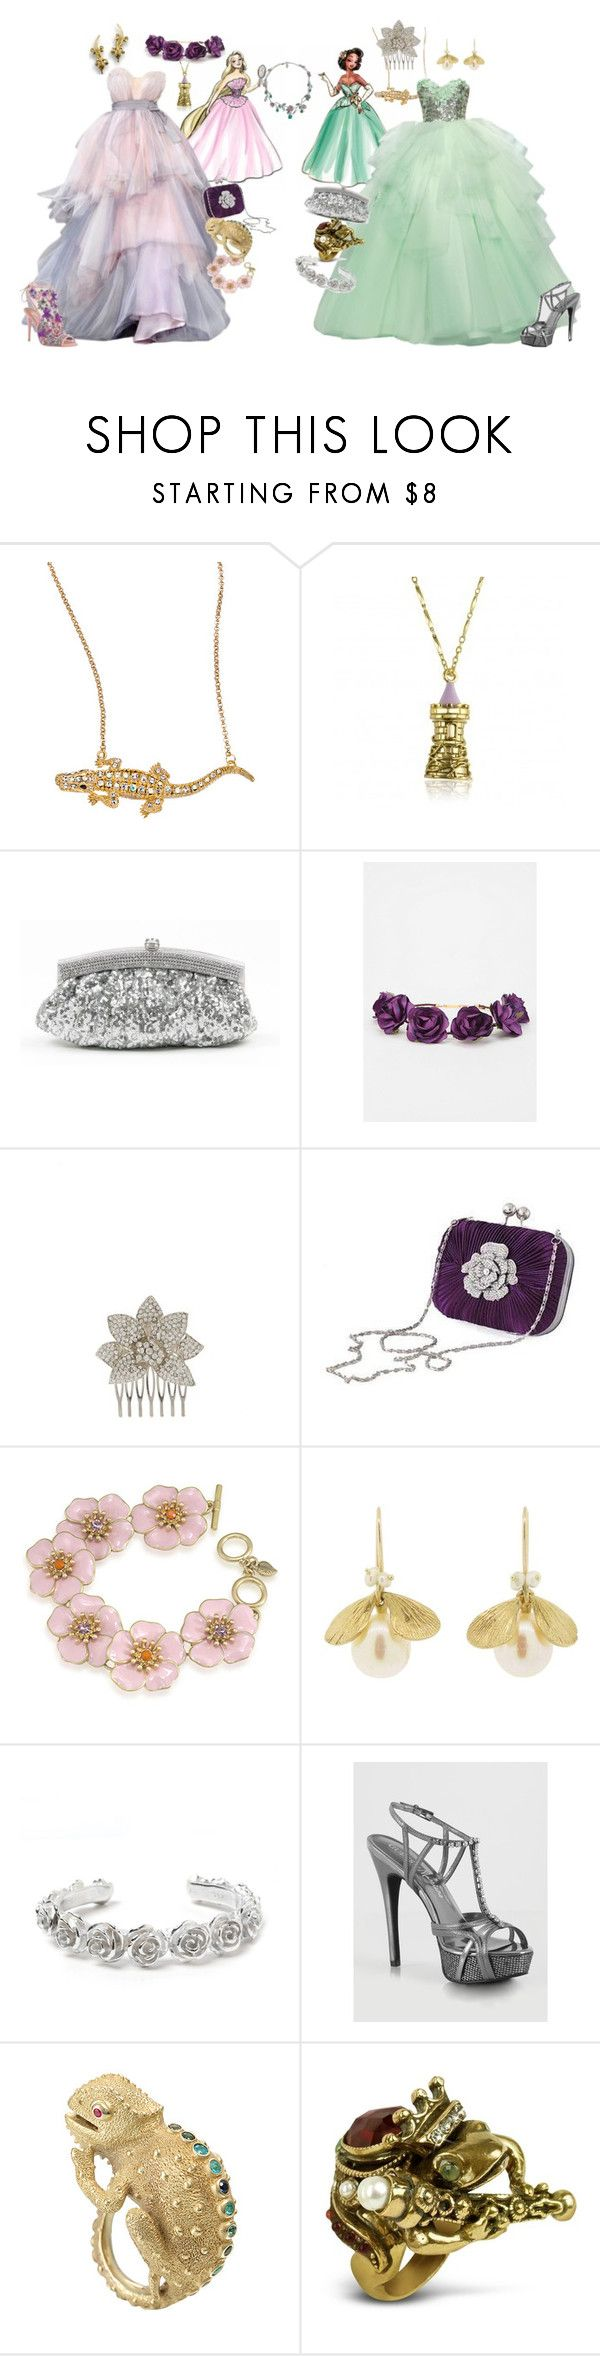 """Rapunzel & Tiana"" by faleur102 ❤ liked on Polyvore featuring Disney, Andrew Hamilton Crawford, Disney Couture, Cult Gaia, Moonbeam, Carolee, Annette Ferdinandsen, LeiVanKash, GUESS by Marciano and Valentino"